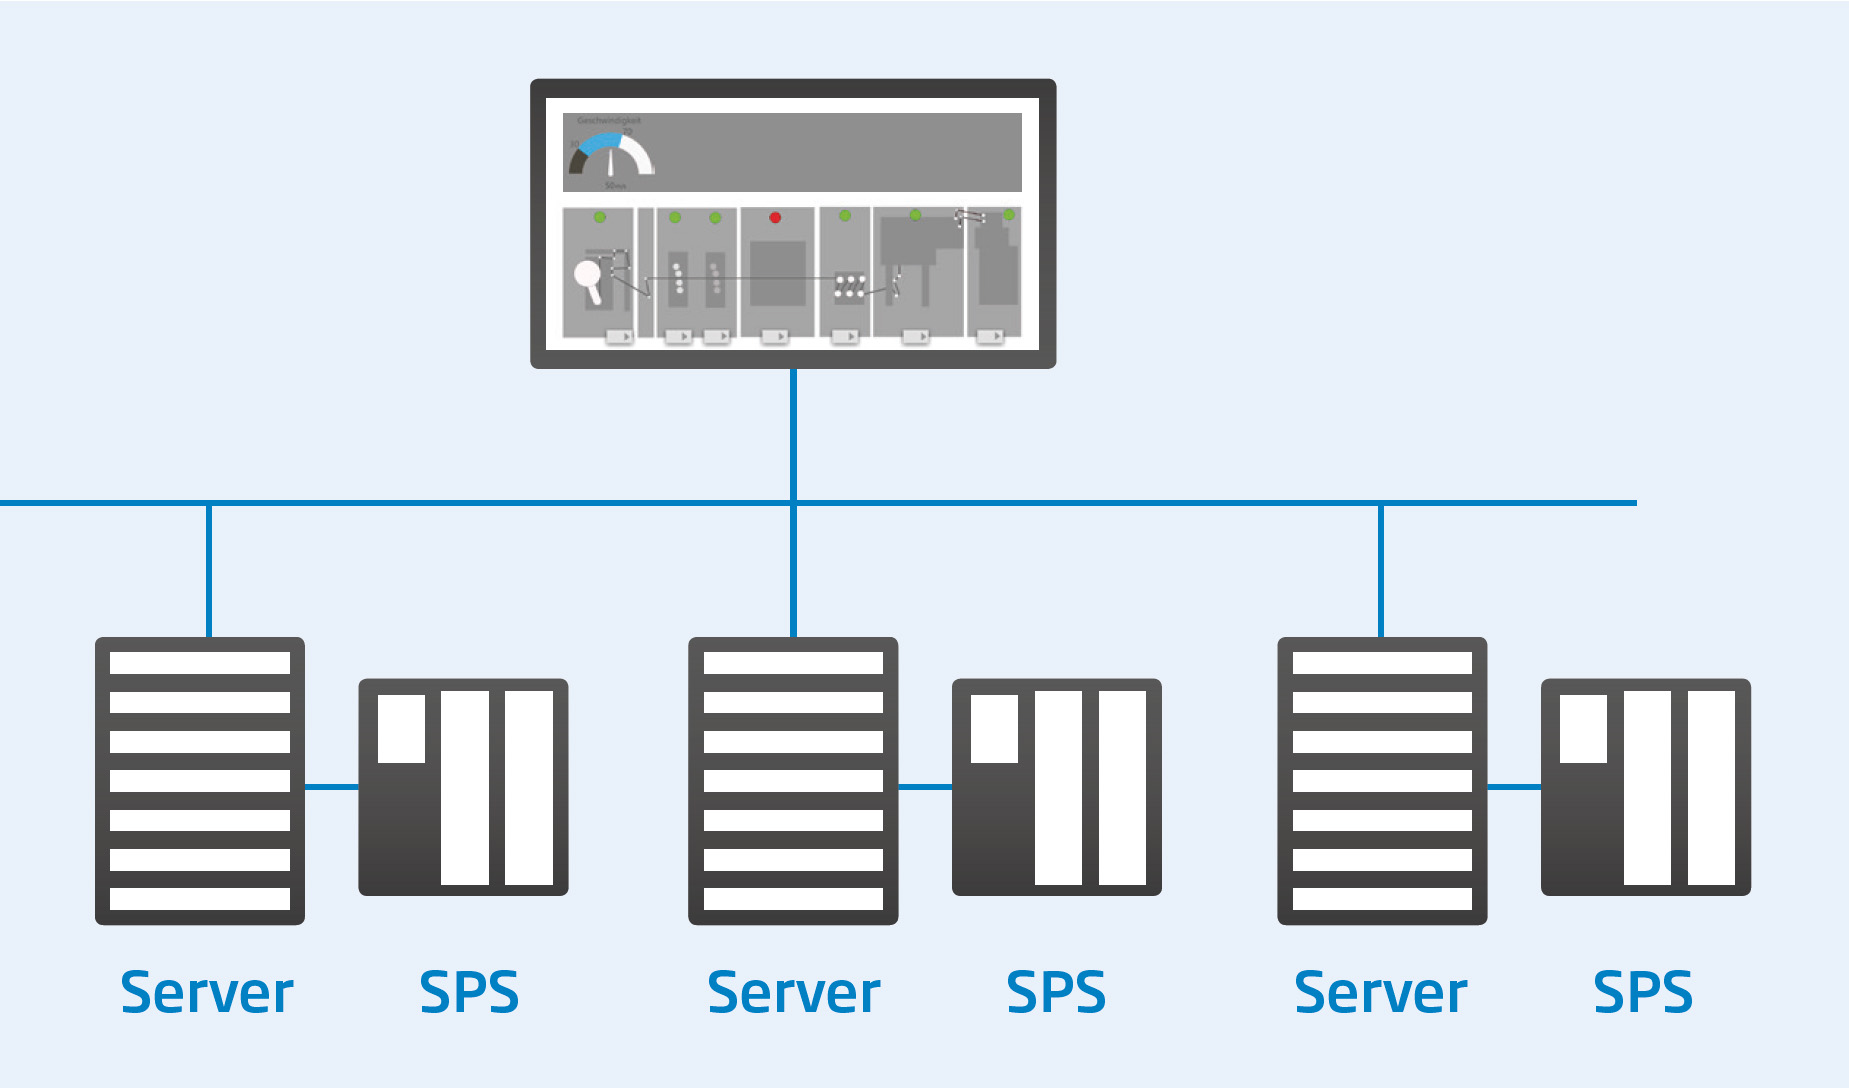 Multi-Server: One Client related to several Servers and SPSs